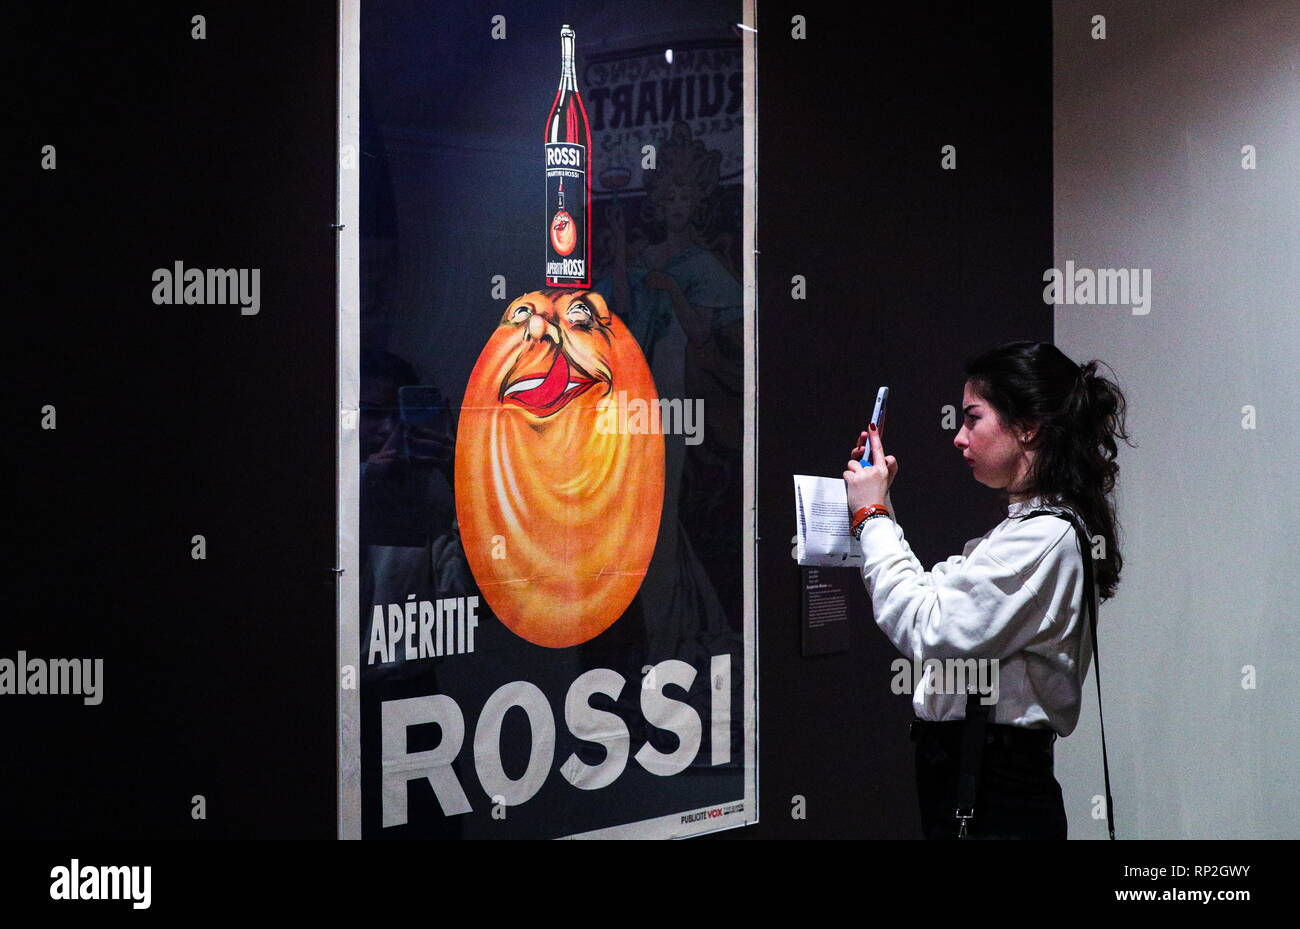 MOSCOW, RUSSIA - FEBRUARY 20, 2019: A poster by Jean Droit on display at an exhibition titled 'Afishemania', containing items of French commercial art dating from the turn of the 20th century, and held at the Pushkin State Museum of Fine Arts. Alexander Shcherbak/TASS - Stock Image